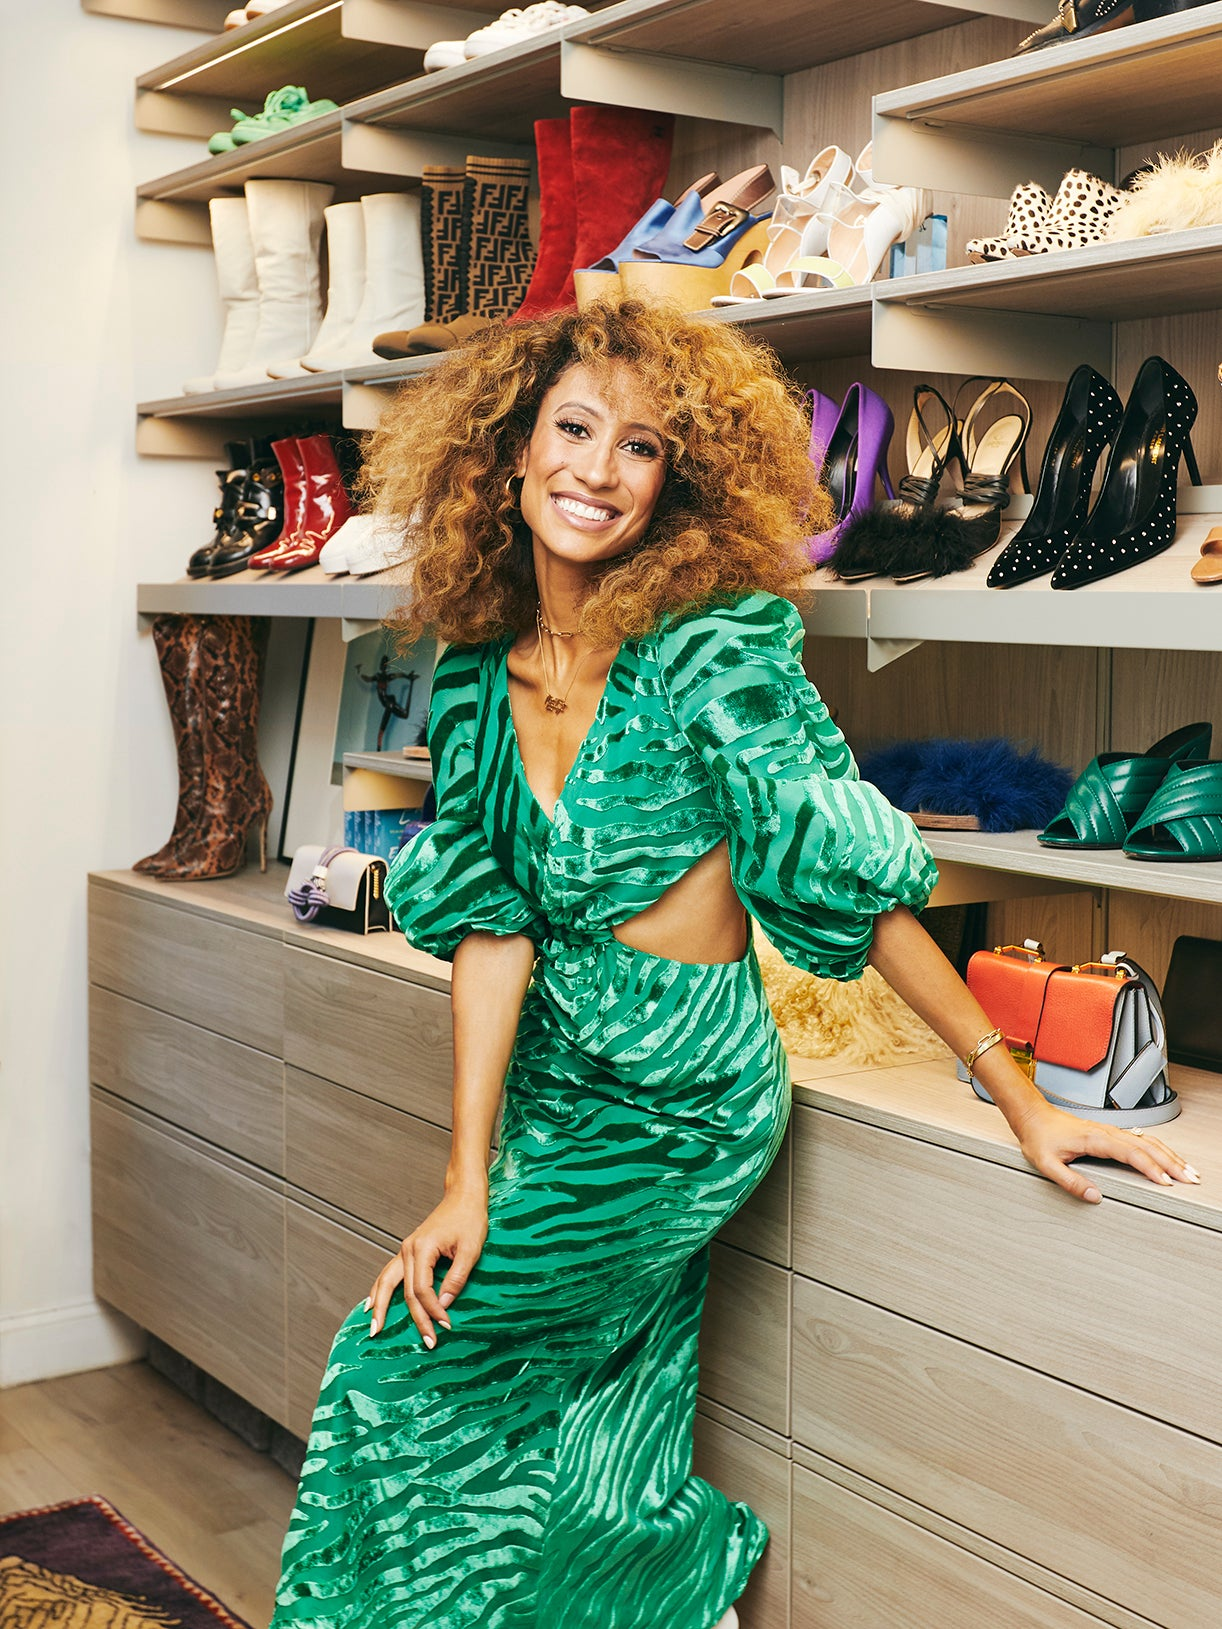 Elaine Welteroth's Custom Closet Is a Master Class In Organization